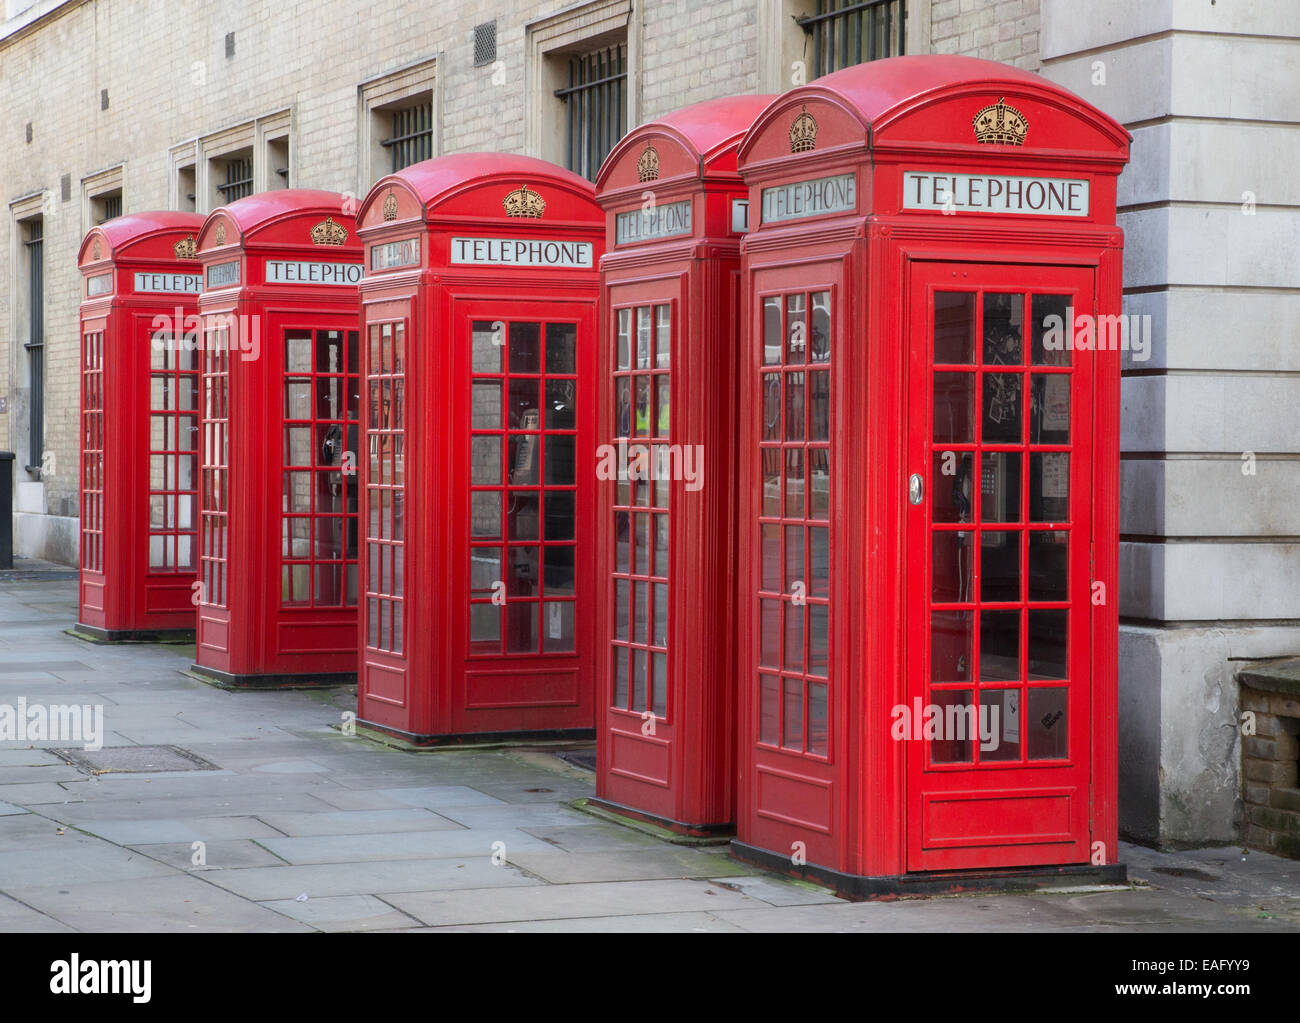 K2 Red telephone boxes designed by Sir Giles Gilbert Scott in the 1920's - Stock Image